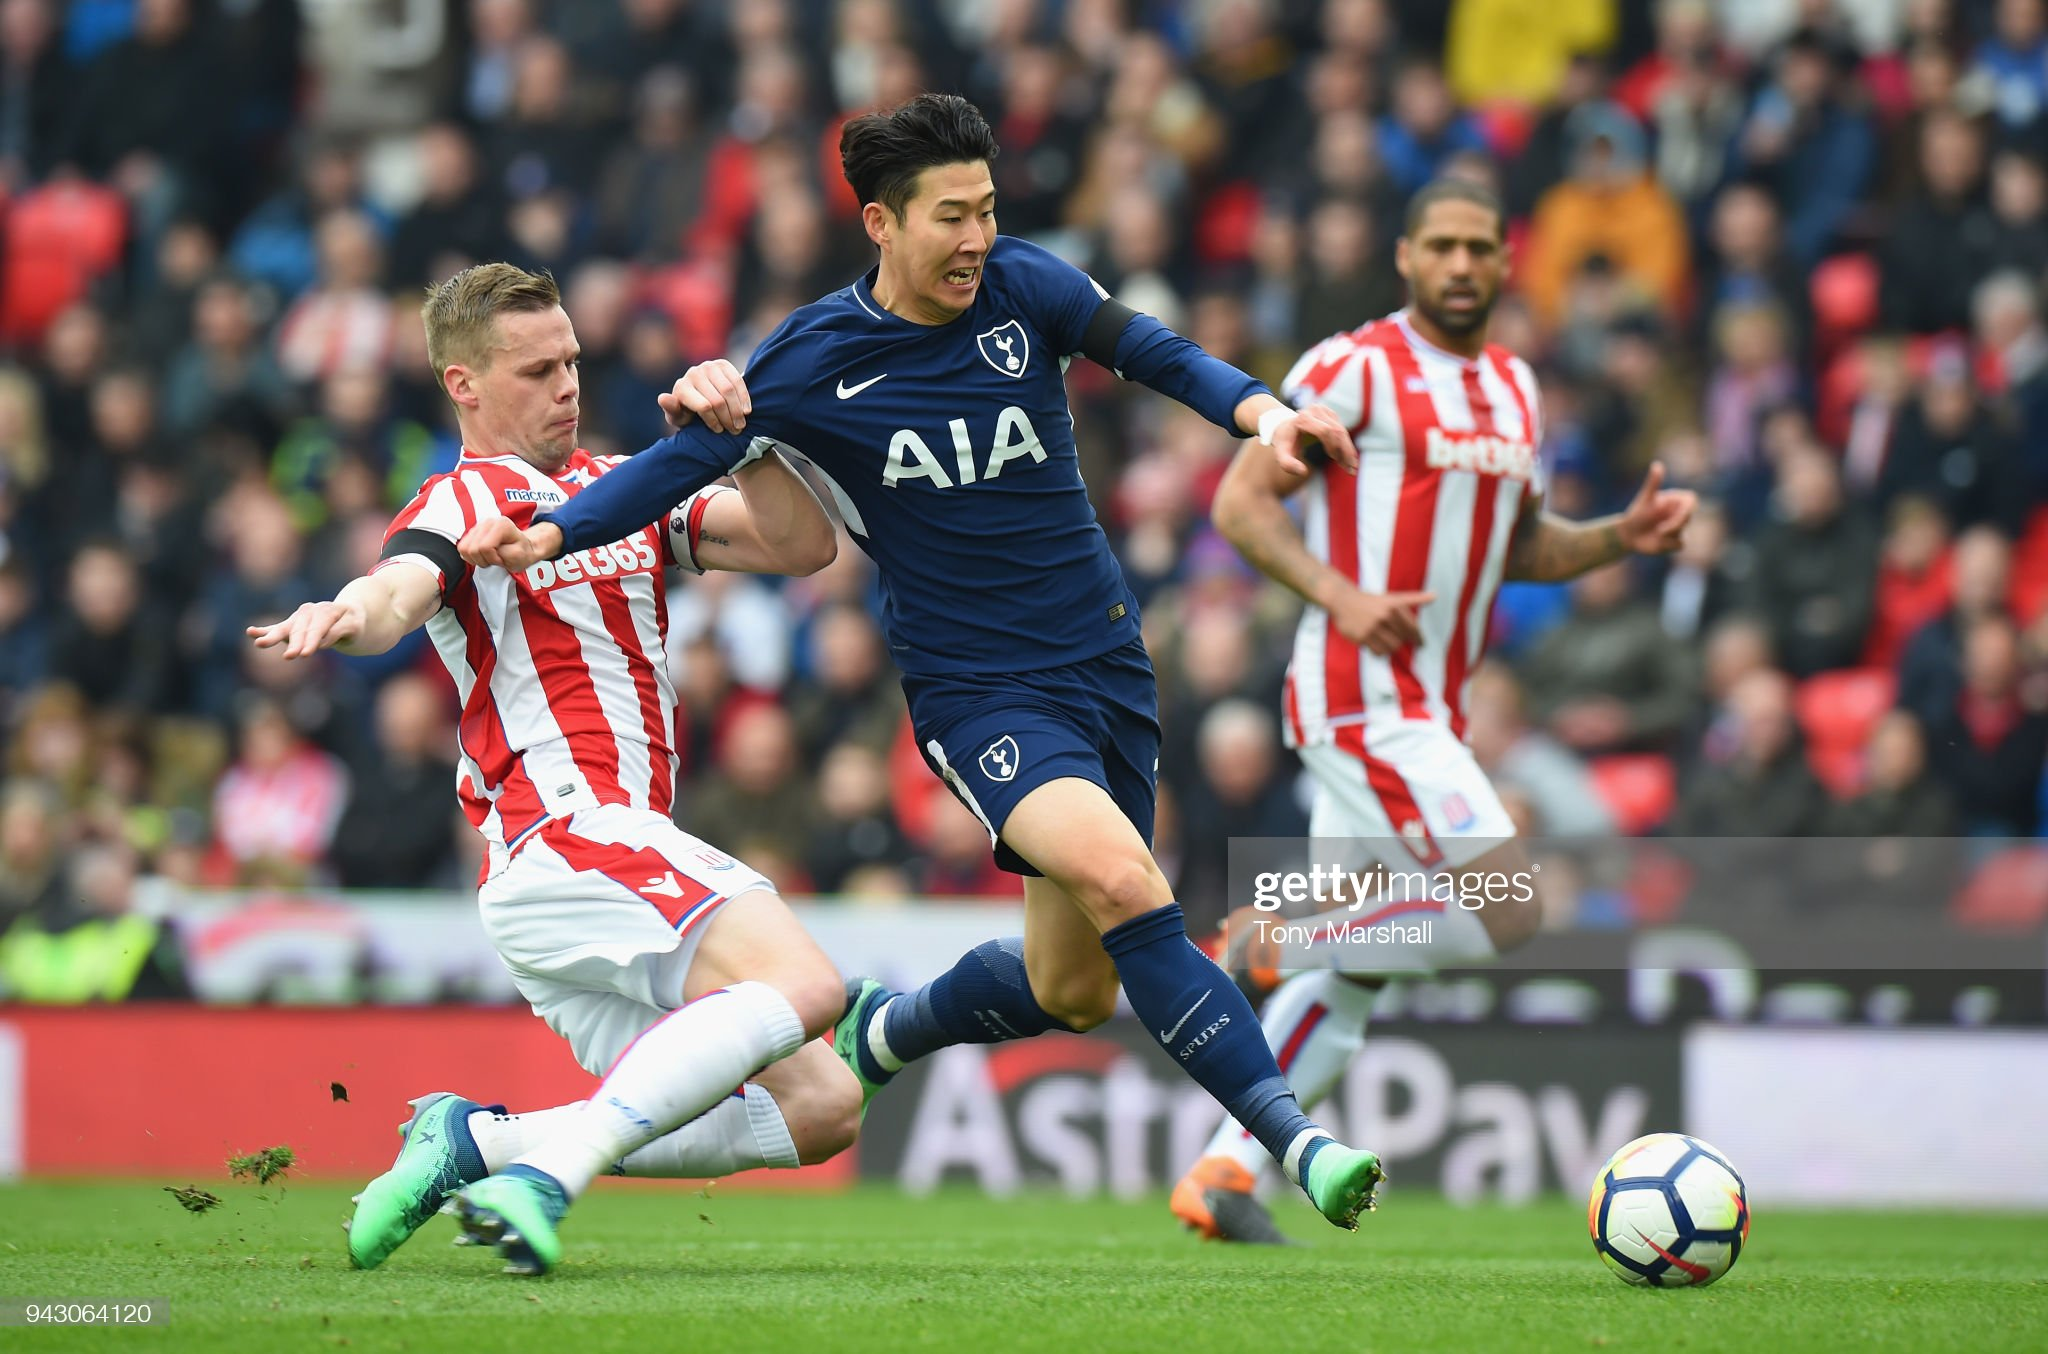 Stoke vs Tottenham preview, prediction and odds